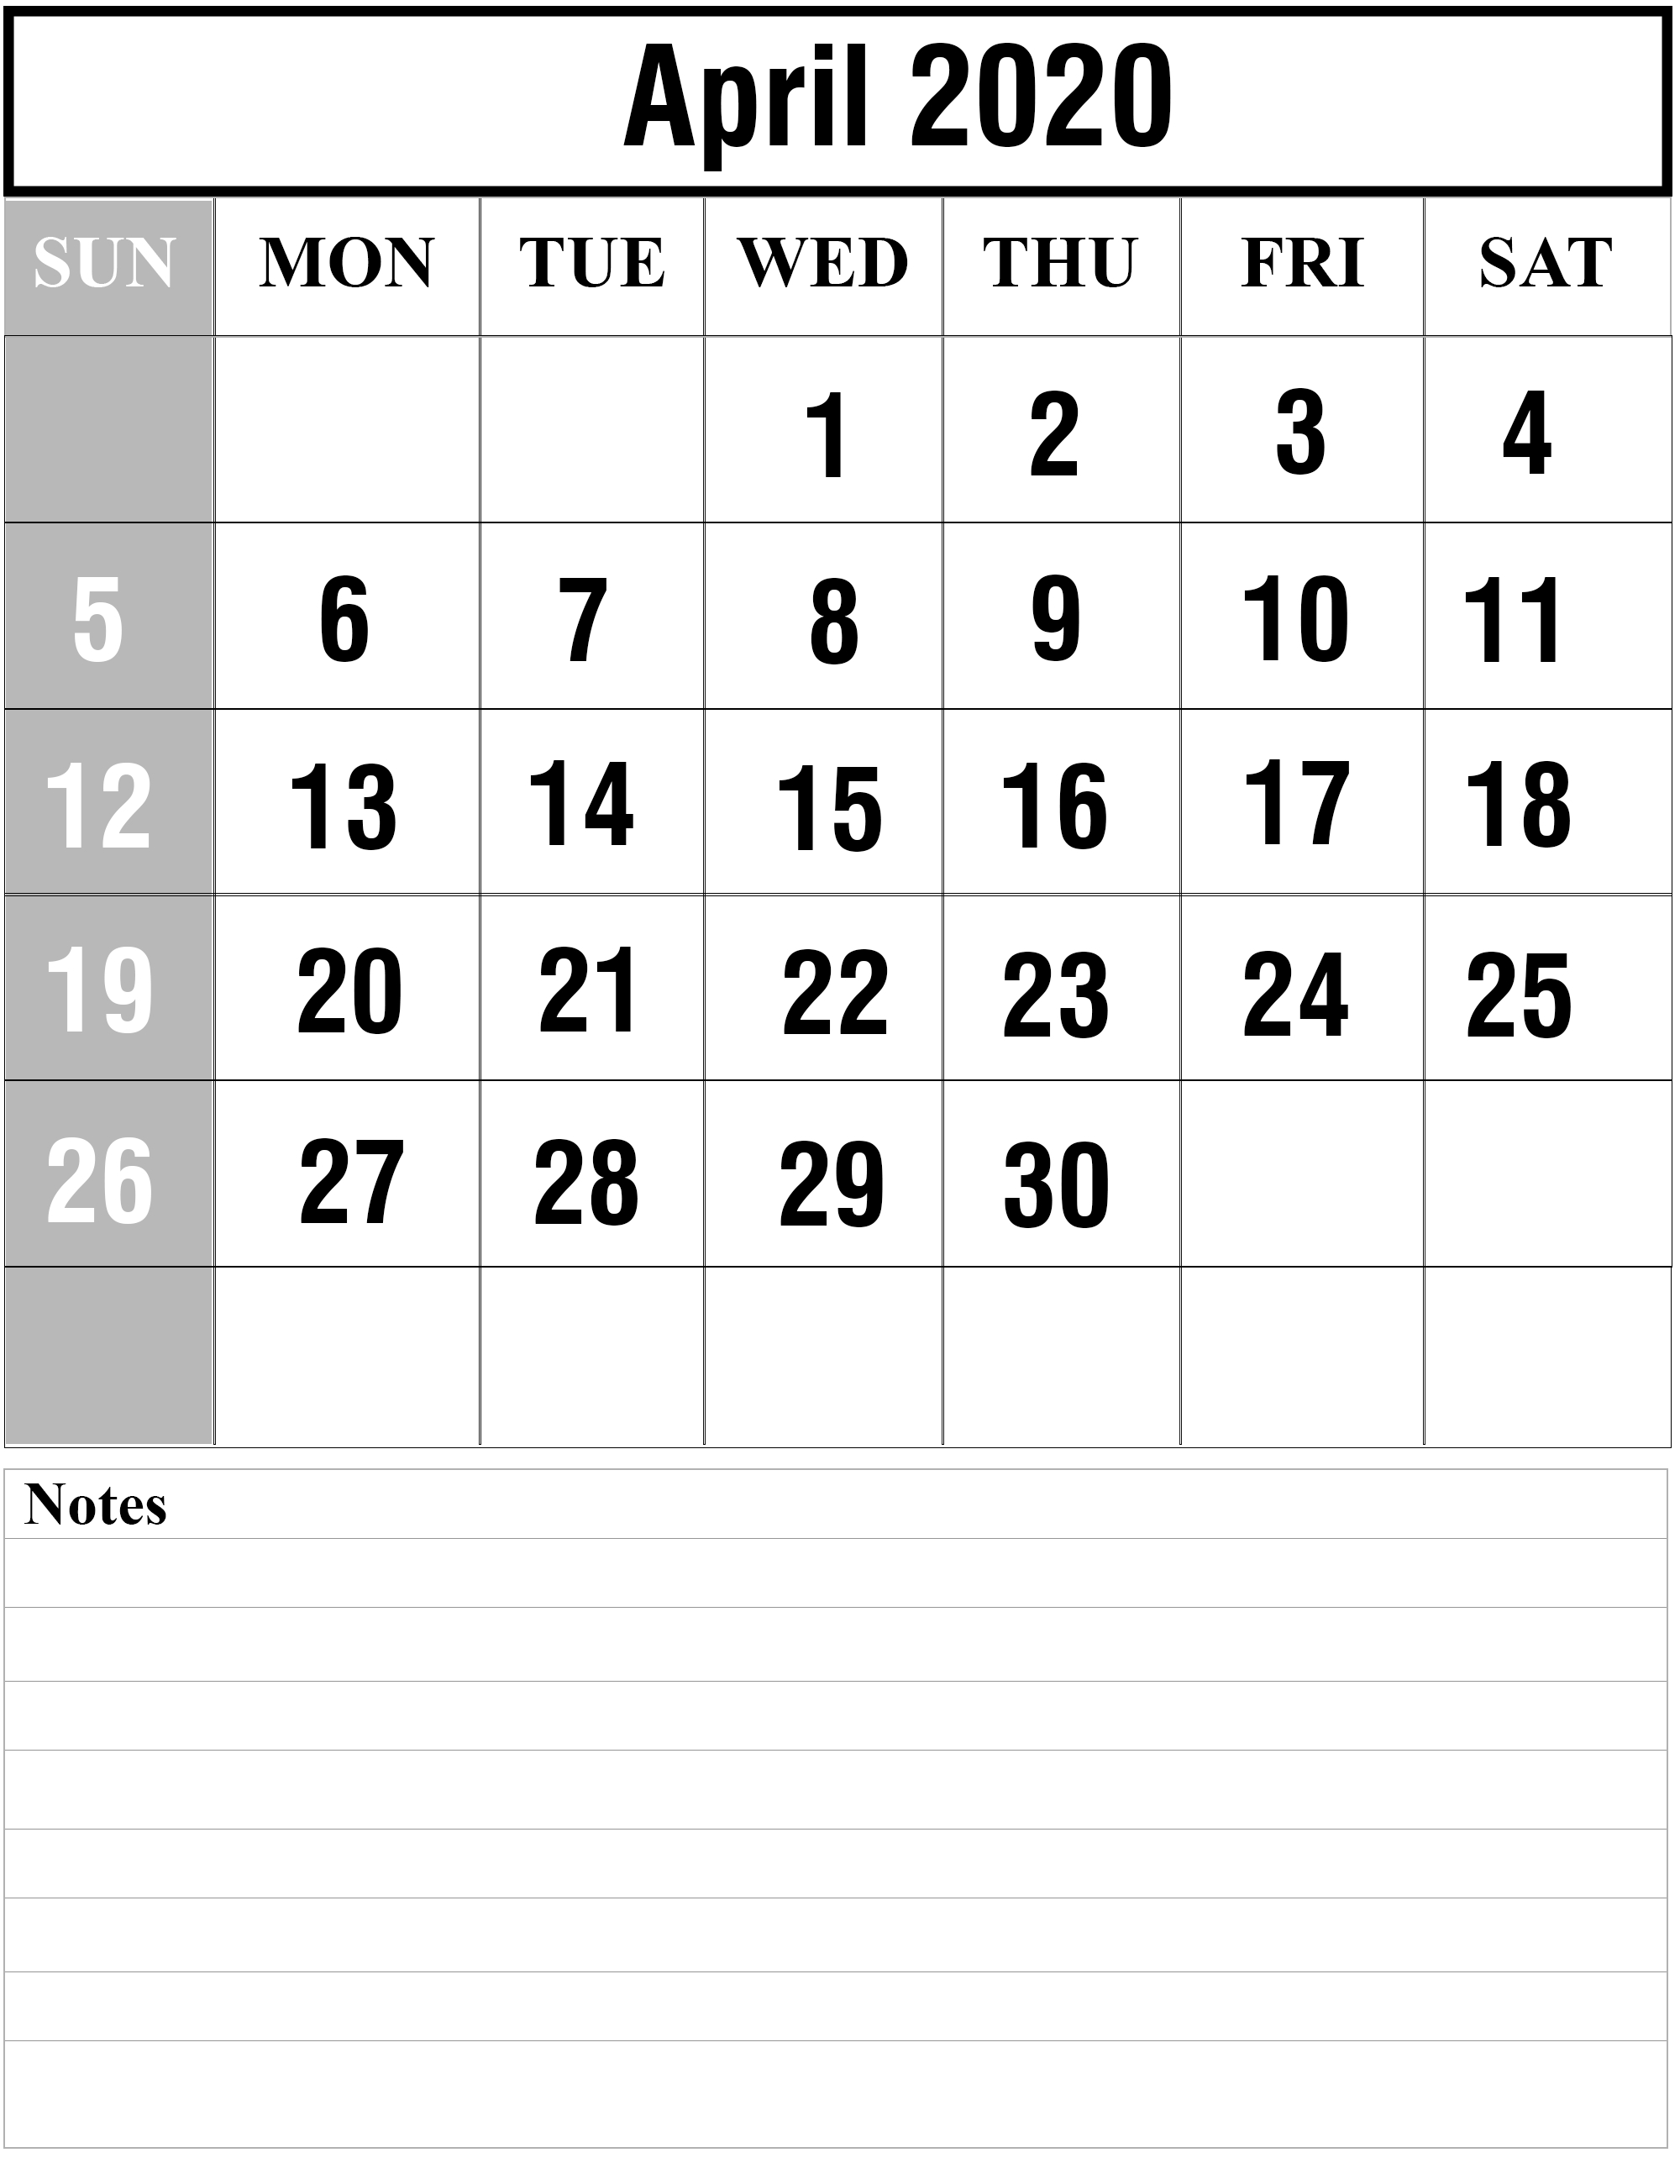 Free April 2020 Printable Calendar Template With Holidays [Pdf intended for Calendar 2020 Excell Romania